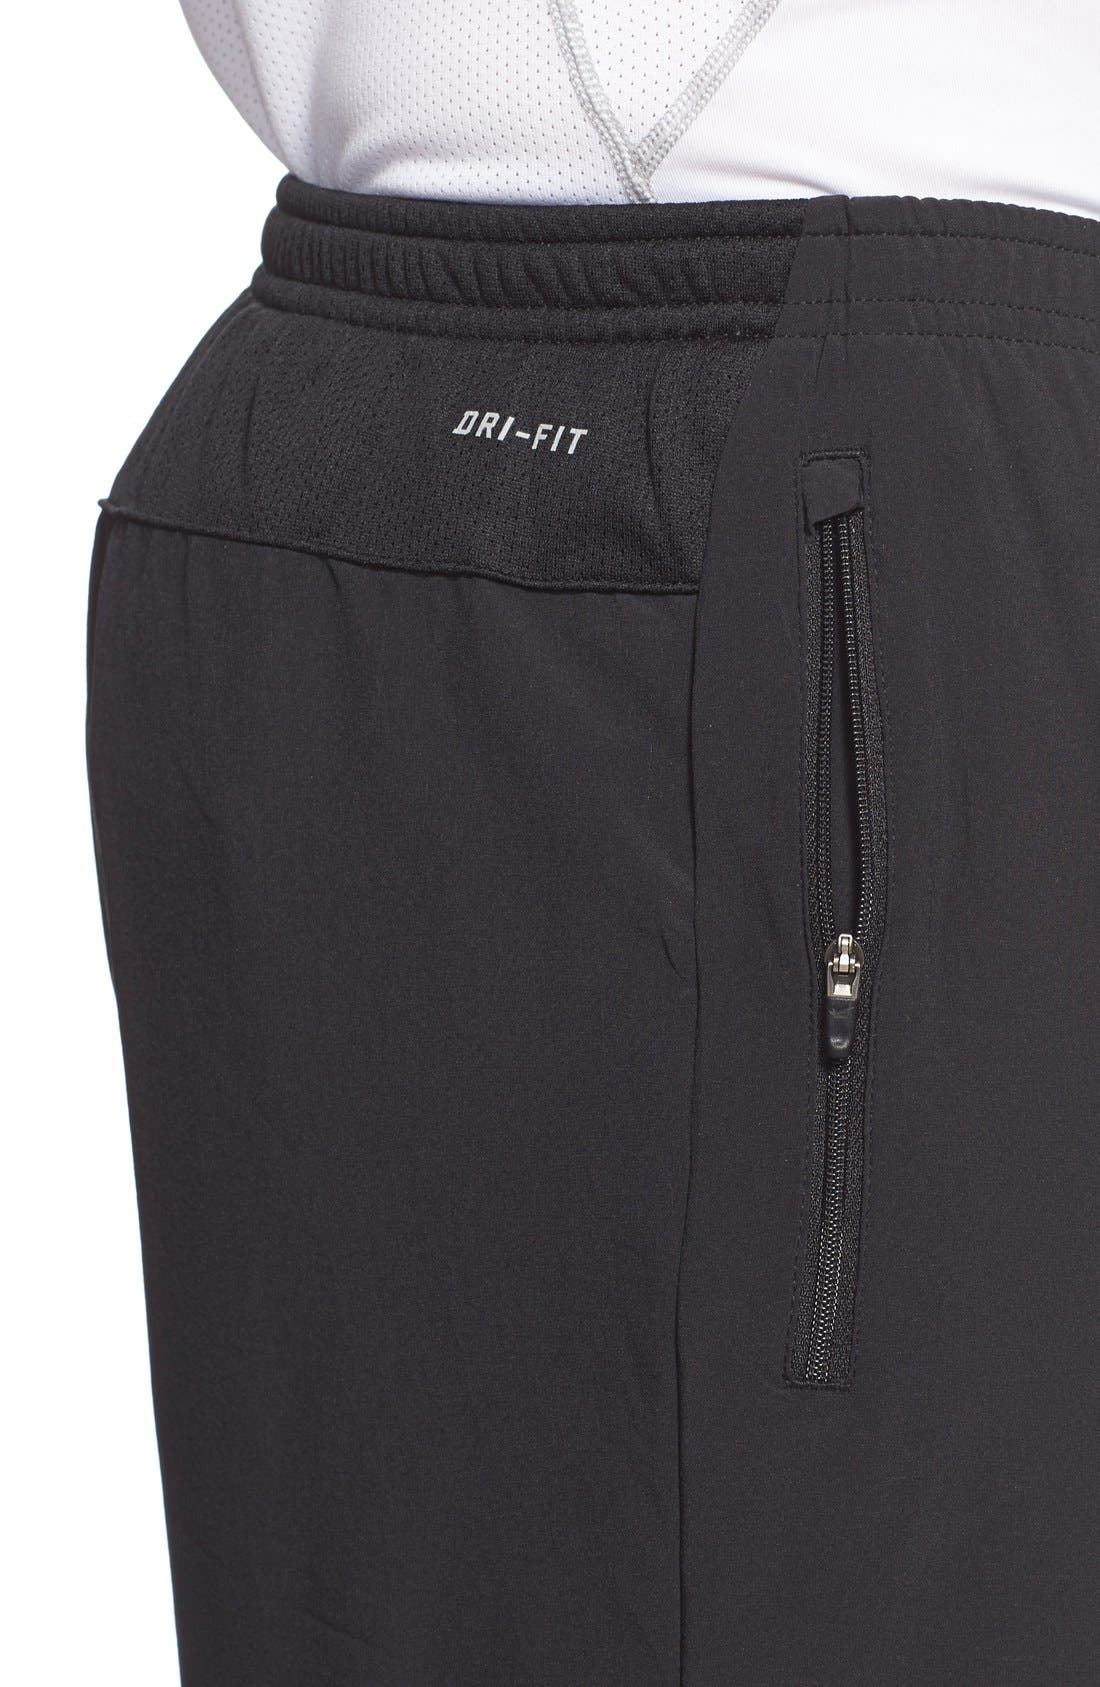 Alternate Image 4  - Nike Dri-FIT Woven Pants